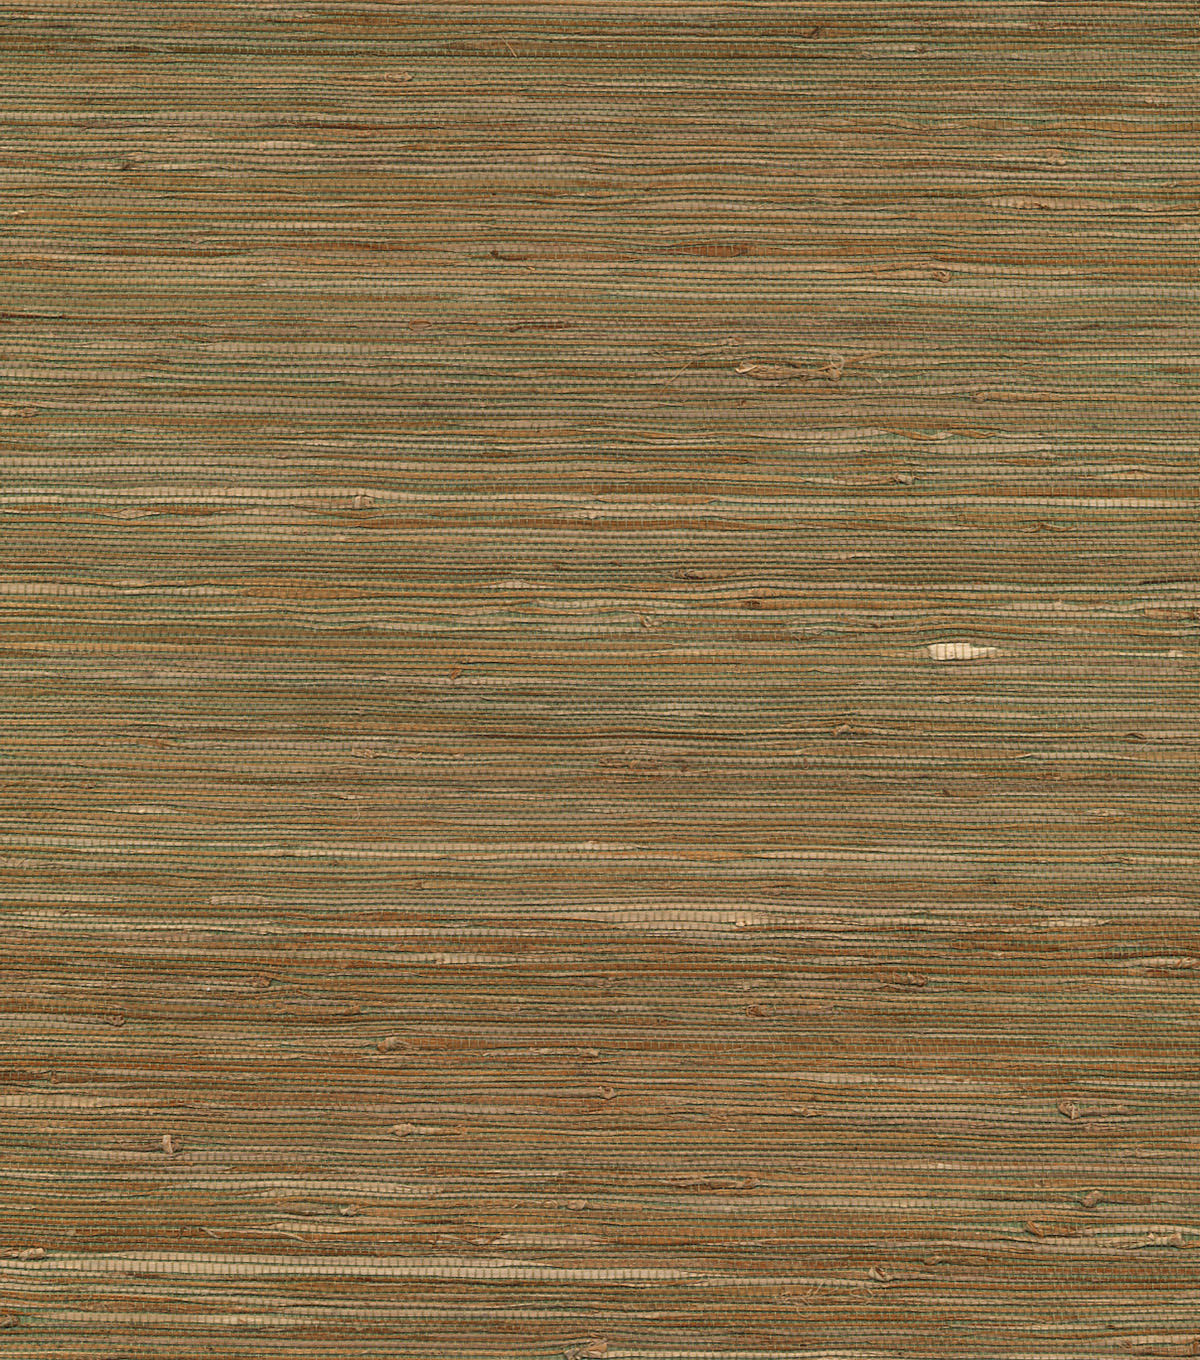 Kaito Olive Grasscloth Wallpaper Sample